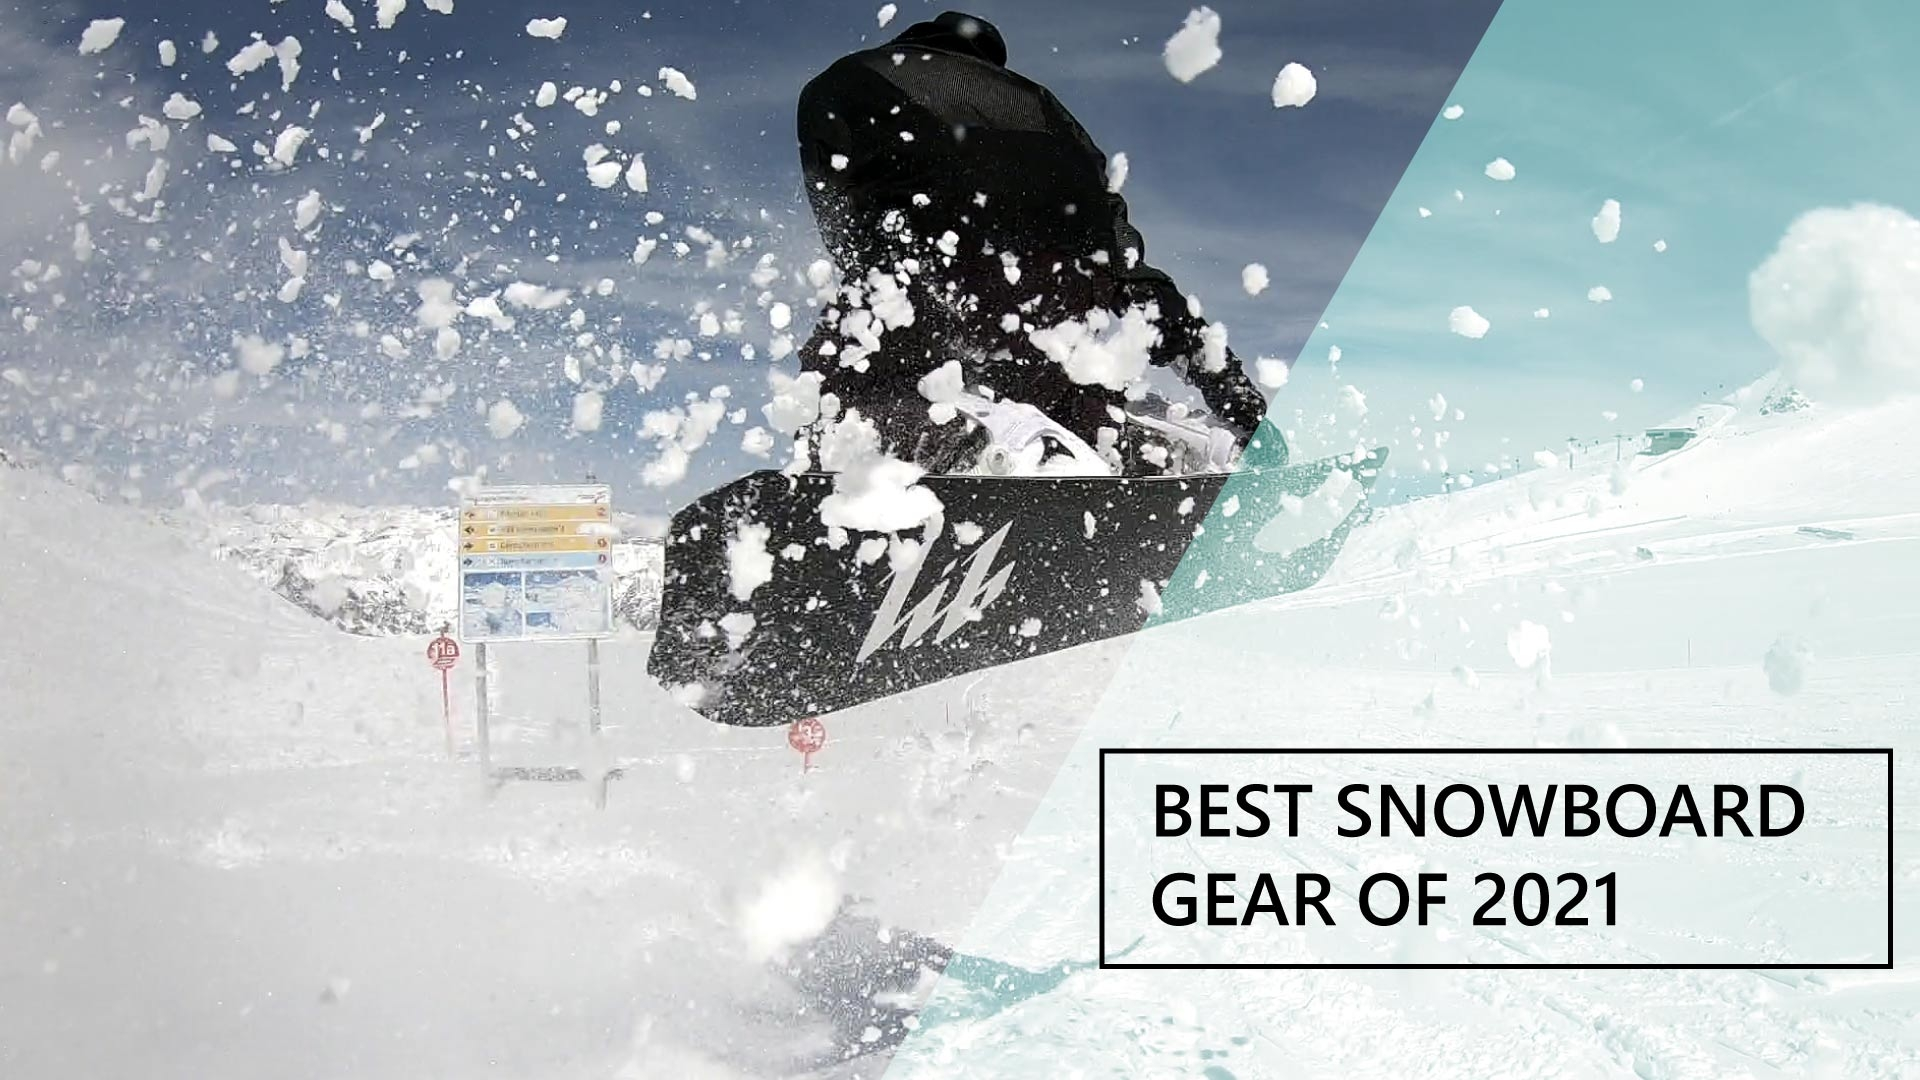 Best Snowboard Gear 2021